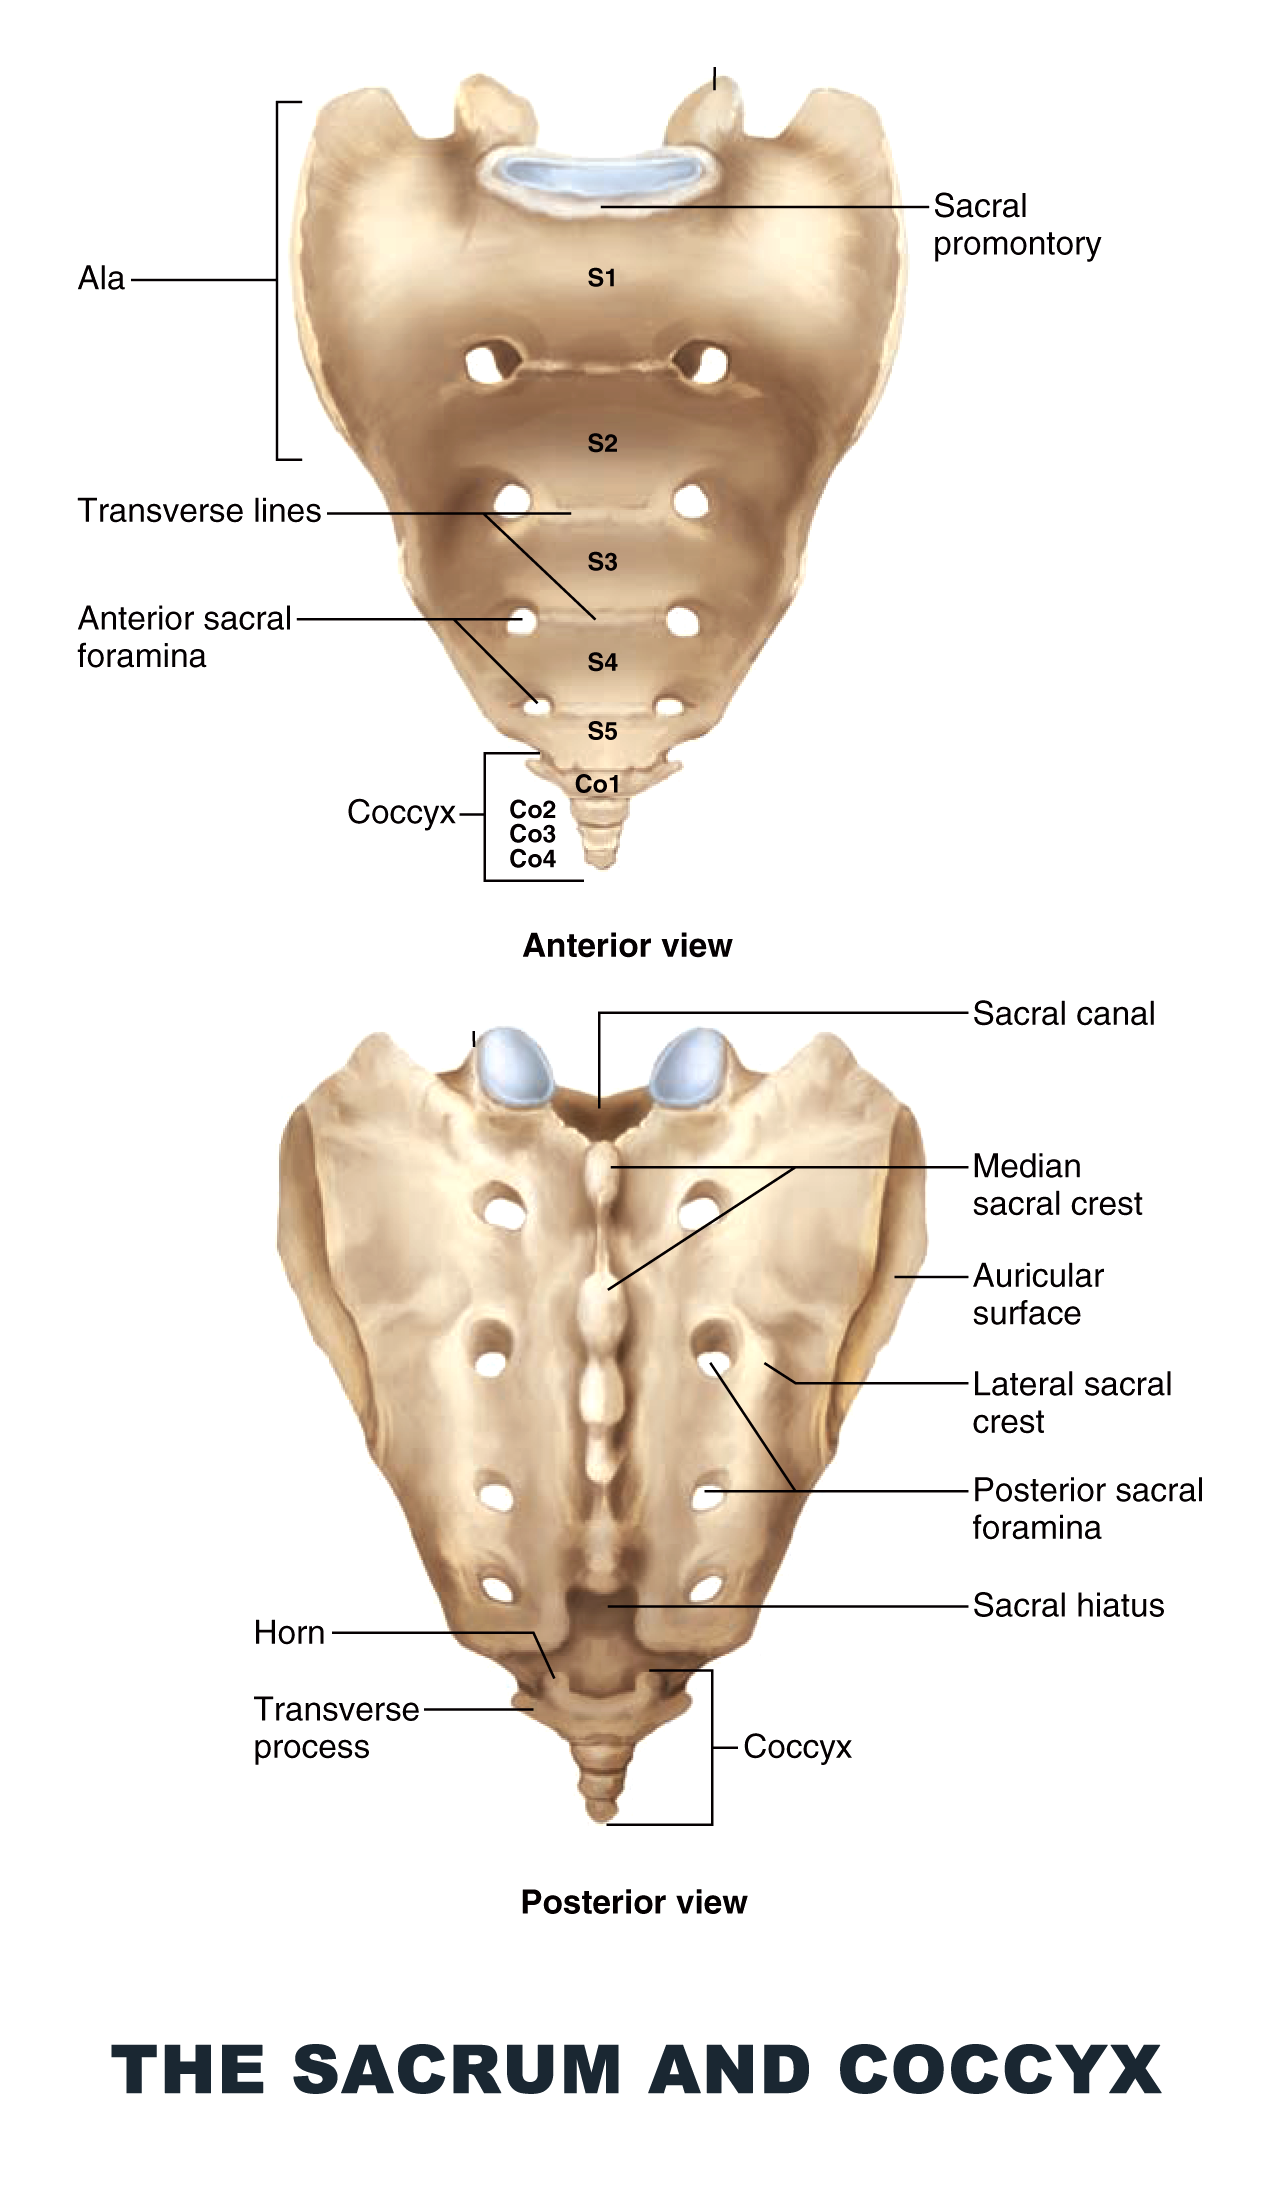 The Sacrum And Coccyx Anatomy Images Illustrations Anatomy